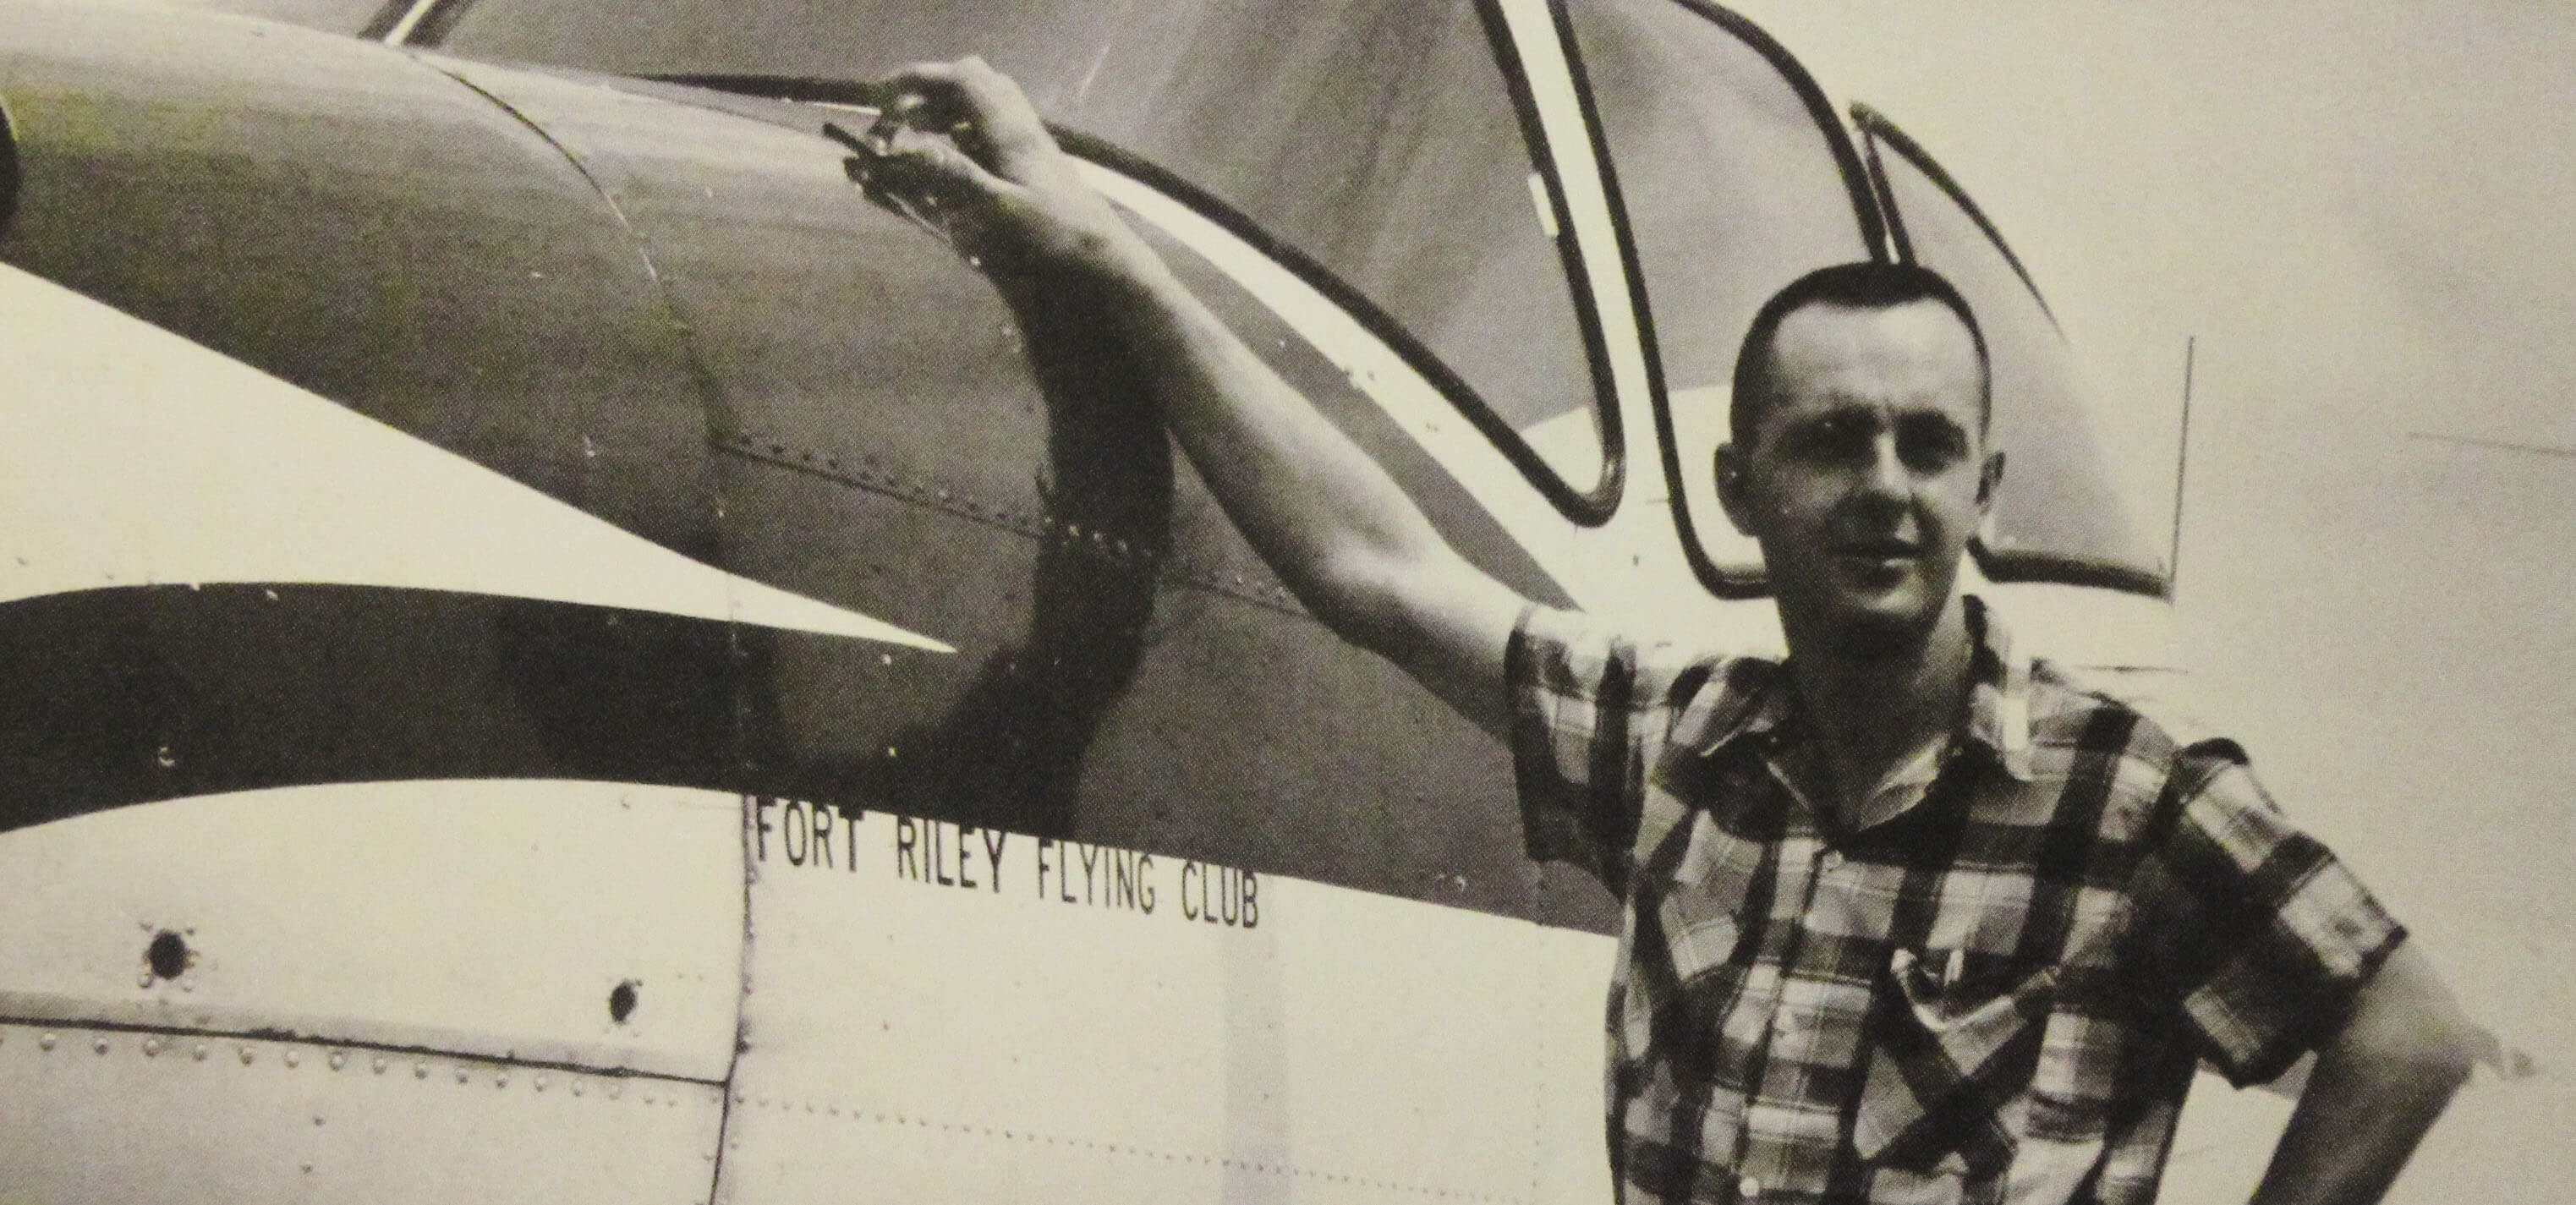 """A young man in civilian clothes leaning up against a plane with the text """"Fort Riley Flying Club"""" on its side."""